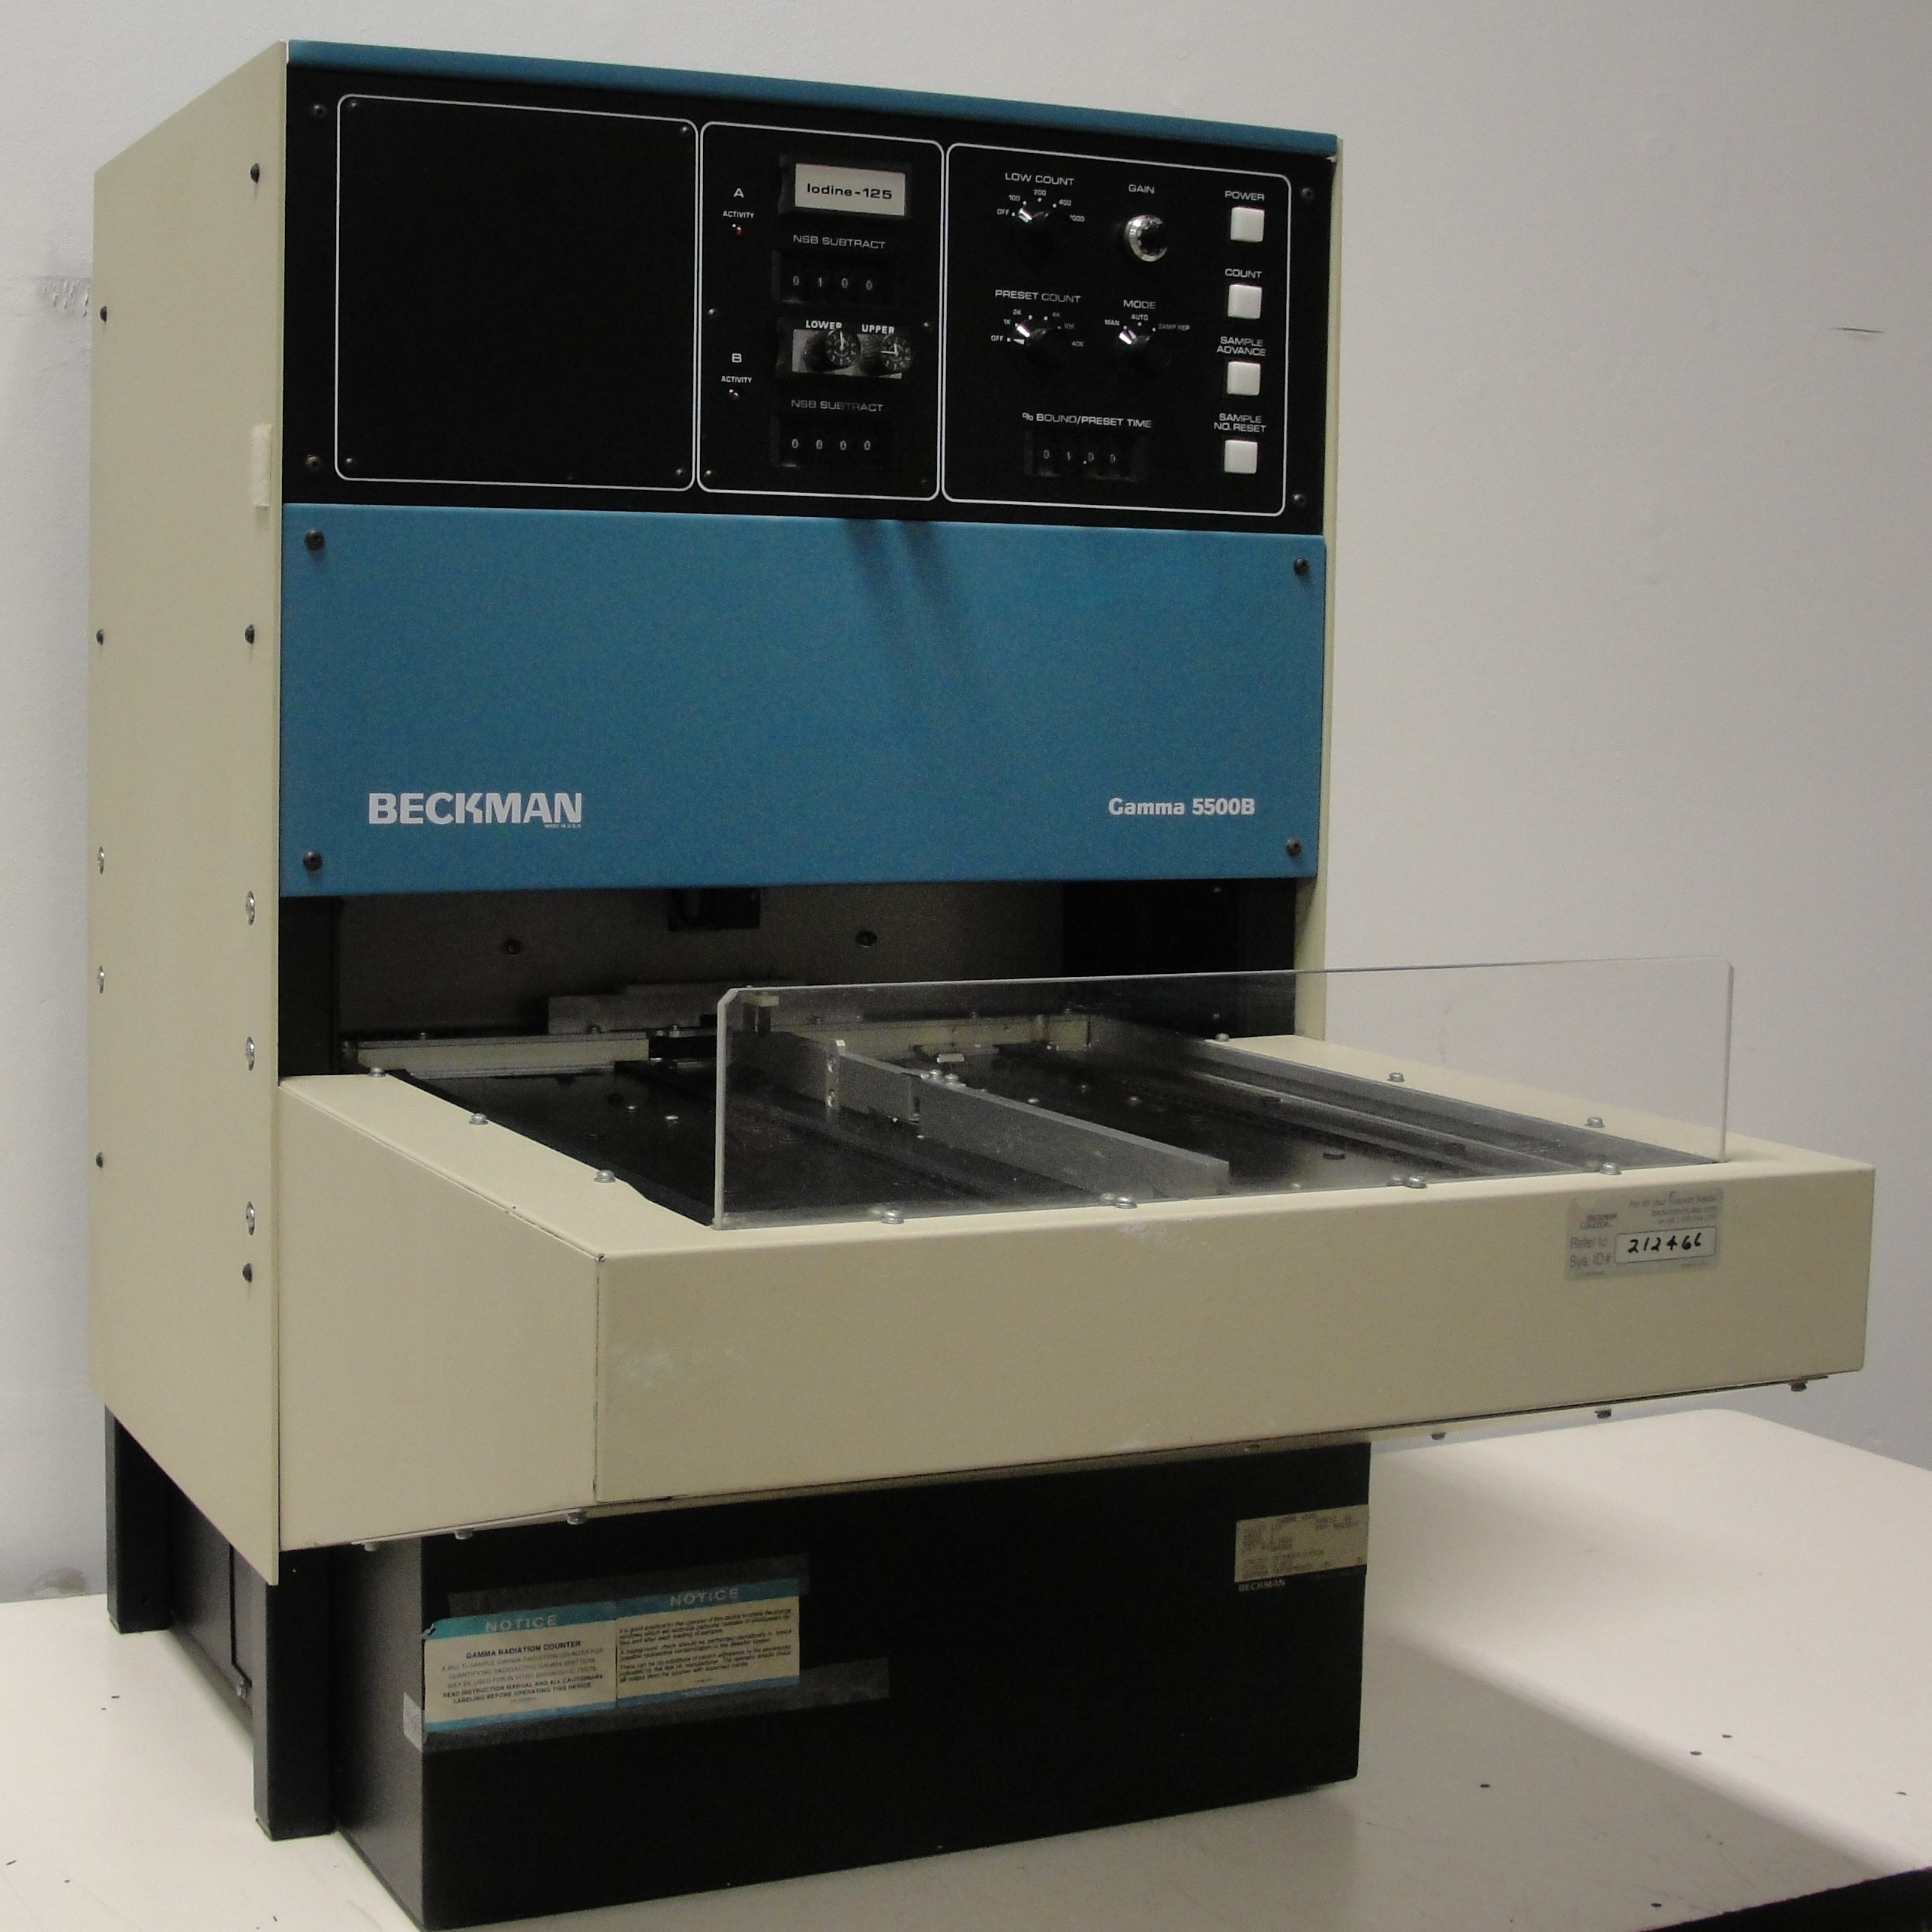 Beckman Coulter 5500B Gamma Counter Image